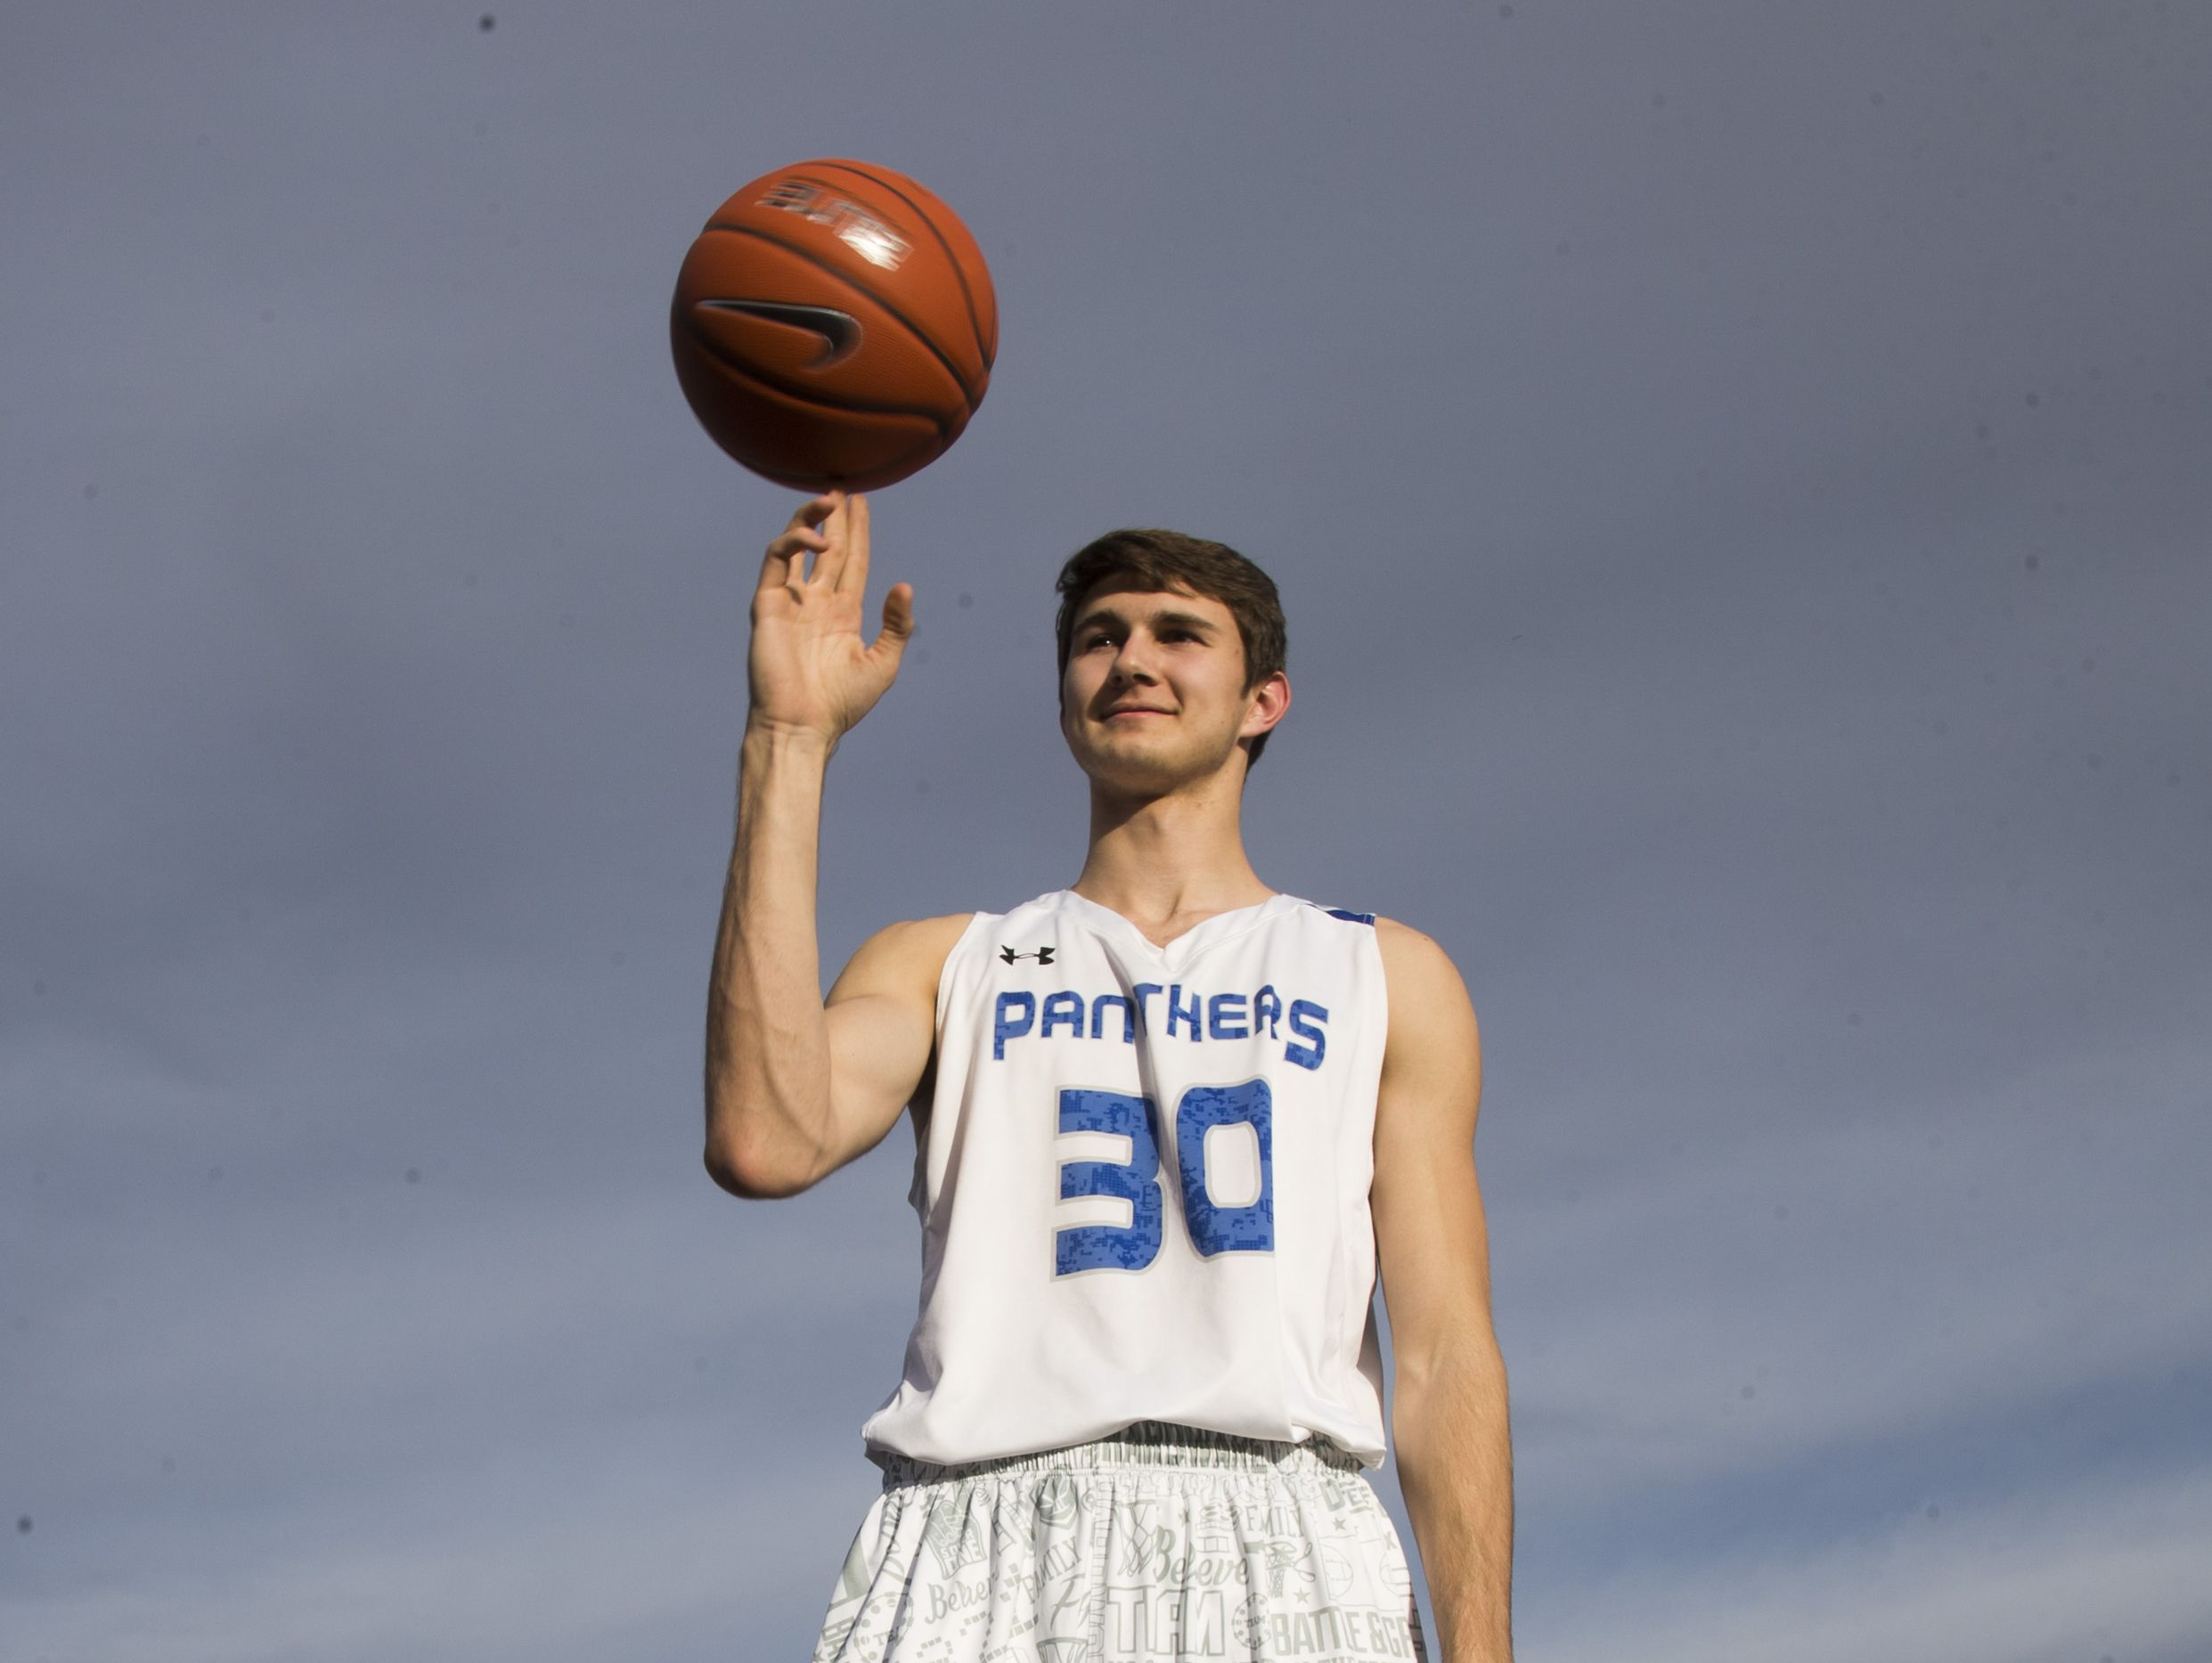 Paradise Honors junior Jared Perry grew from 5-10 to 6-7 over the past three years at Paradise Honors High School.